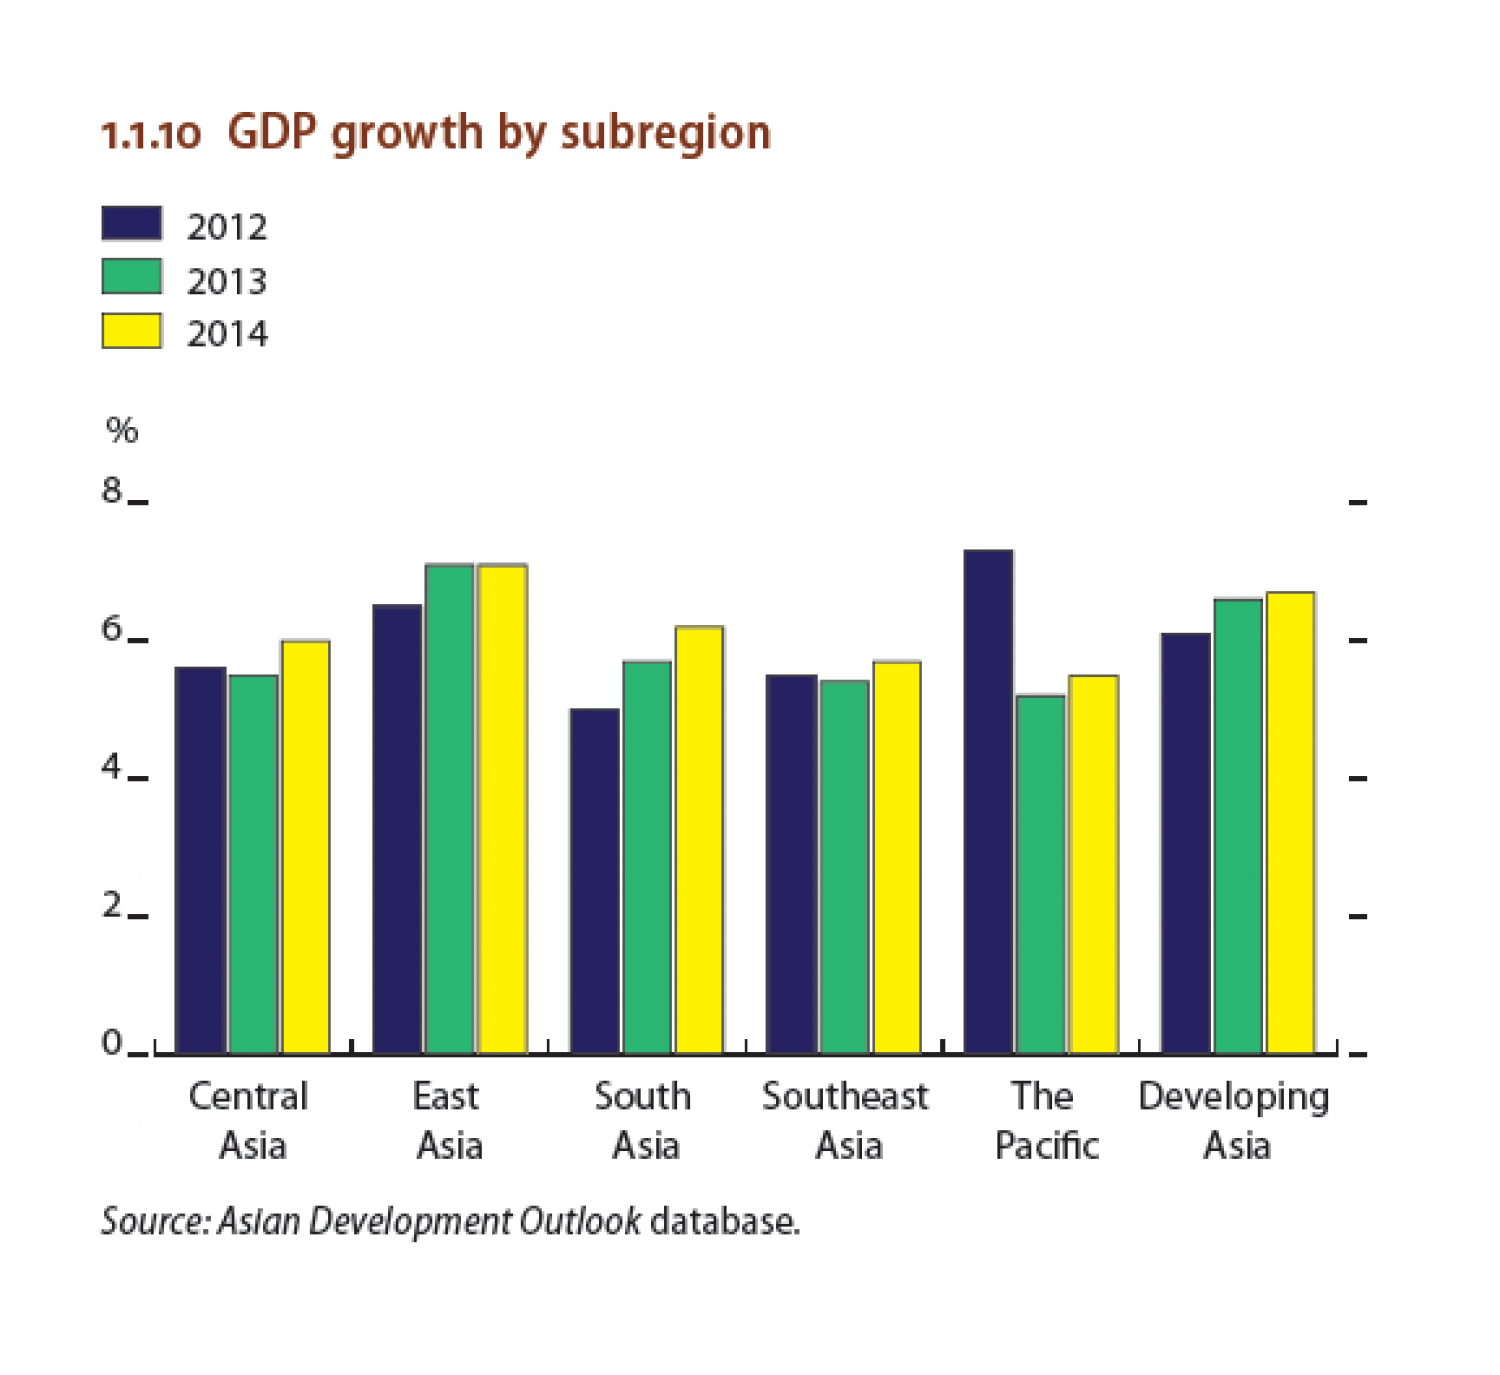 GDP growth by subregion (2012-2013-2014) Infographic